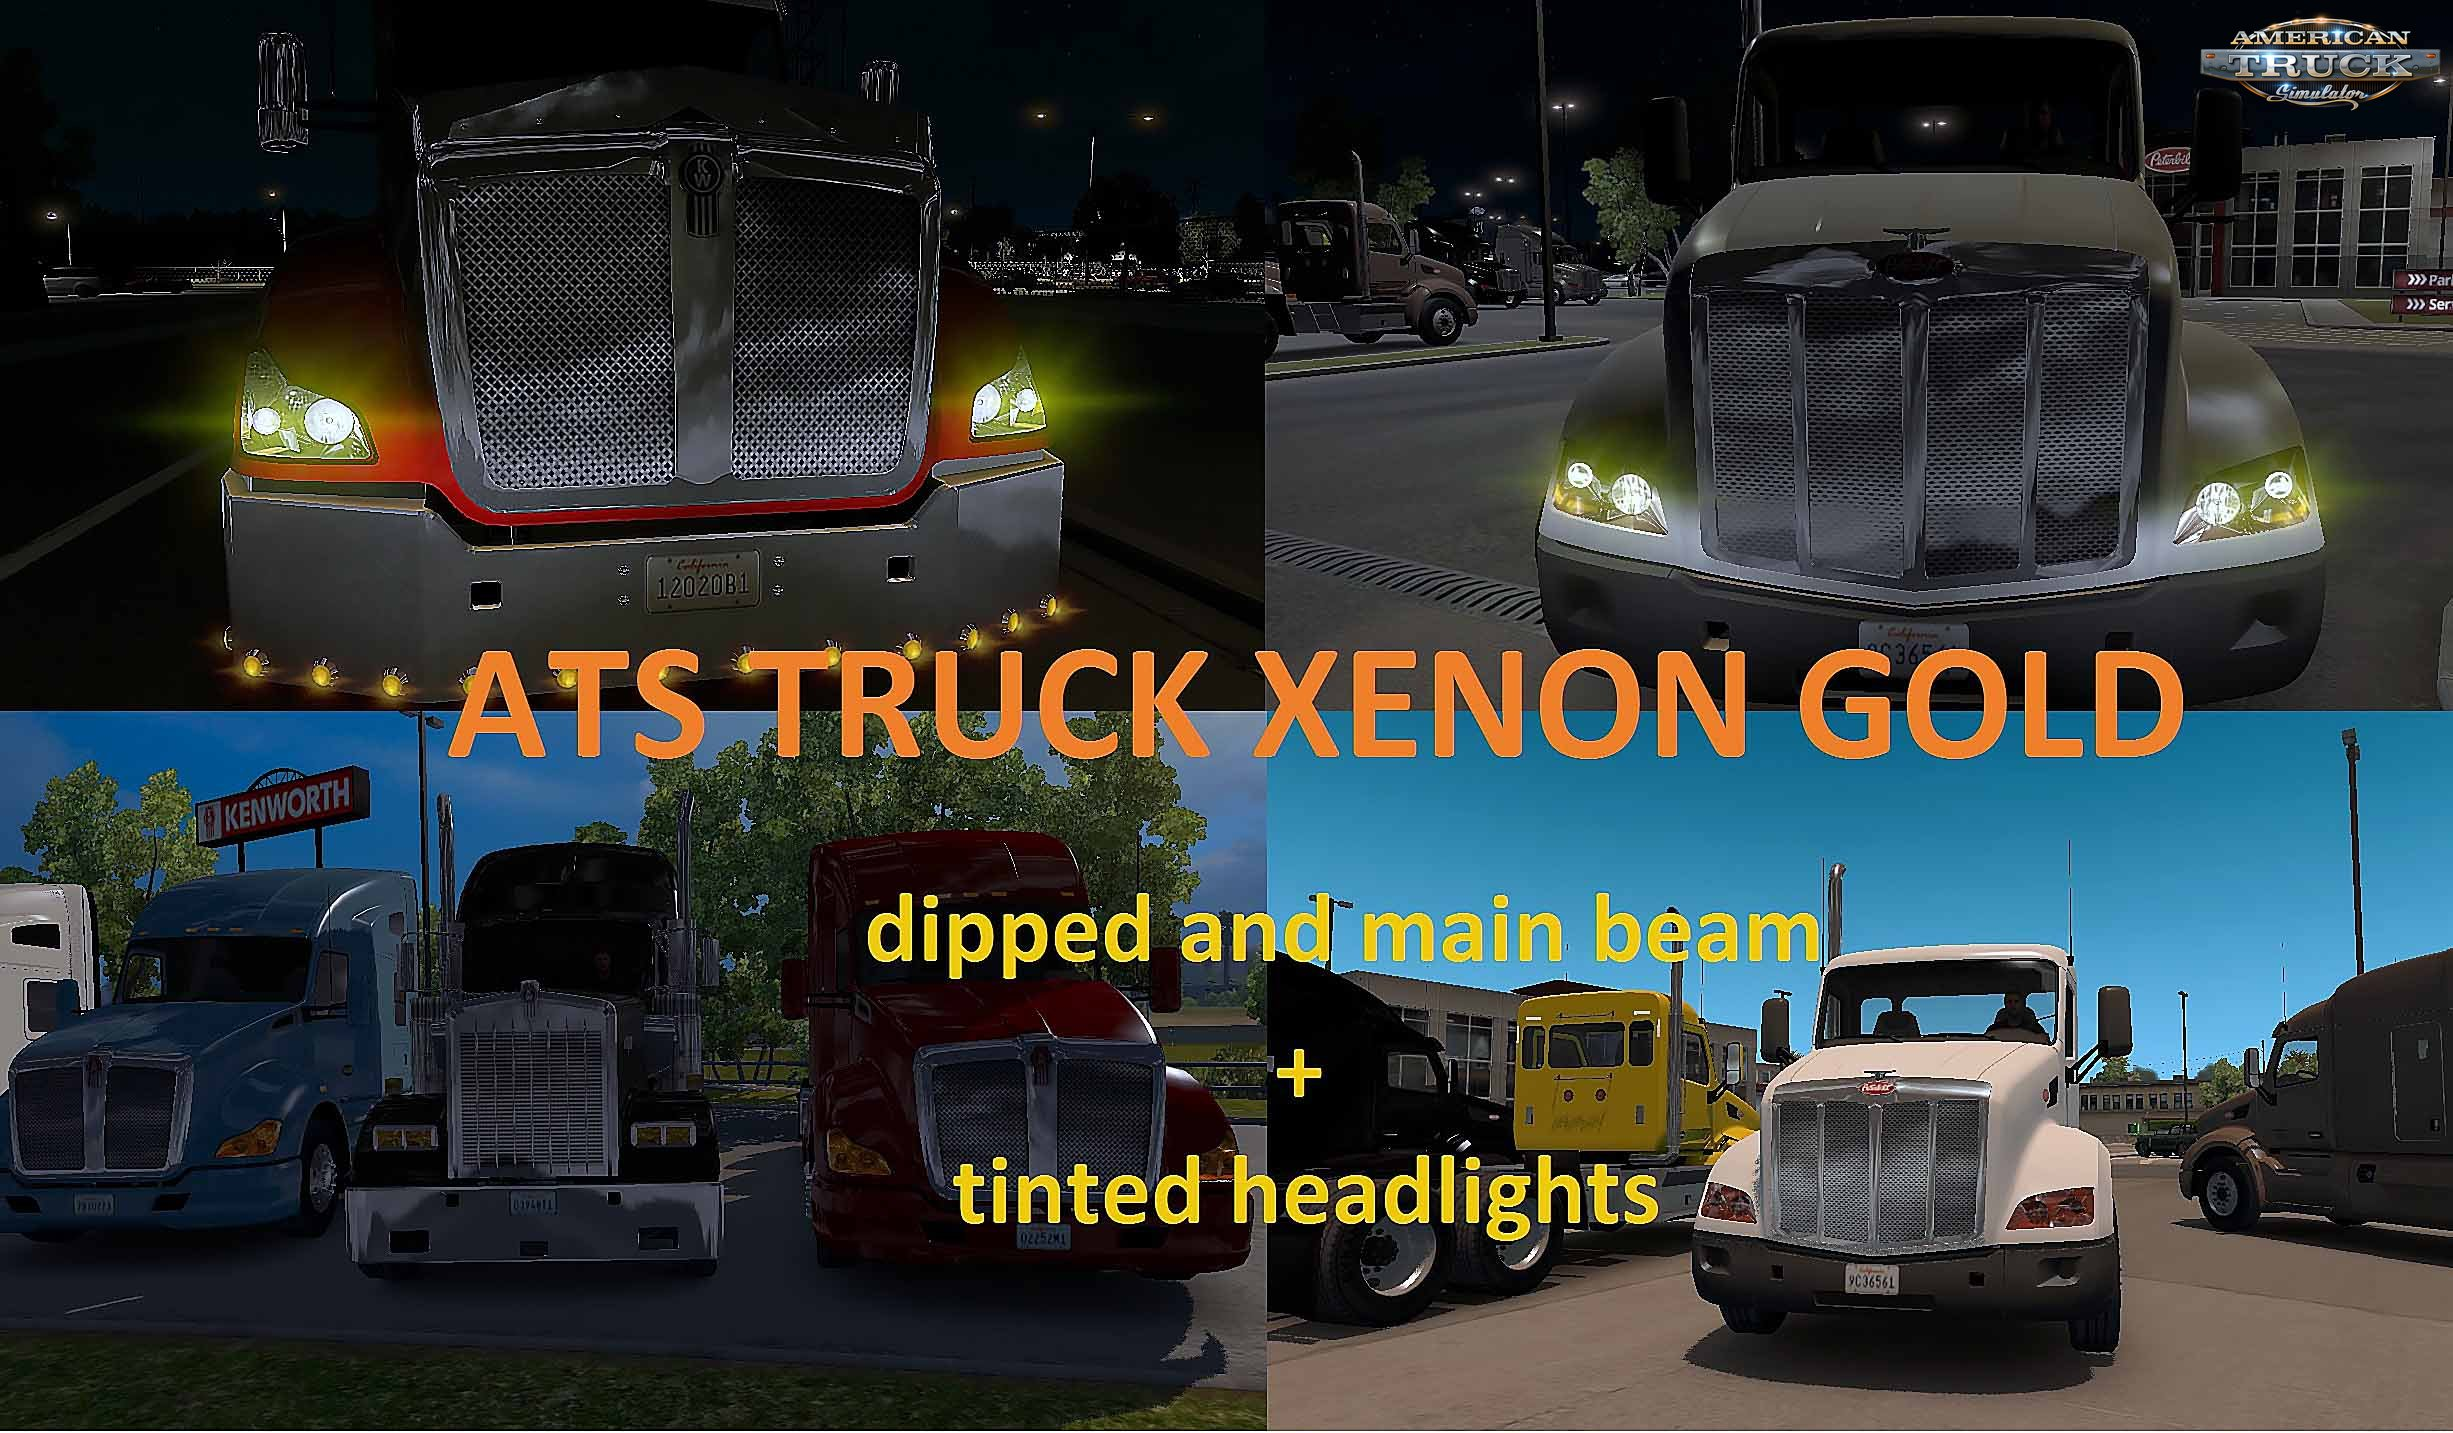 ATS TRUCK XENON GOLD dipped and main beam + tinted headlights